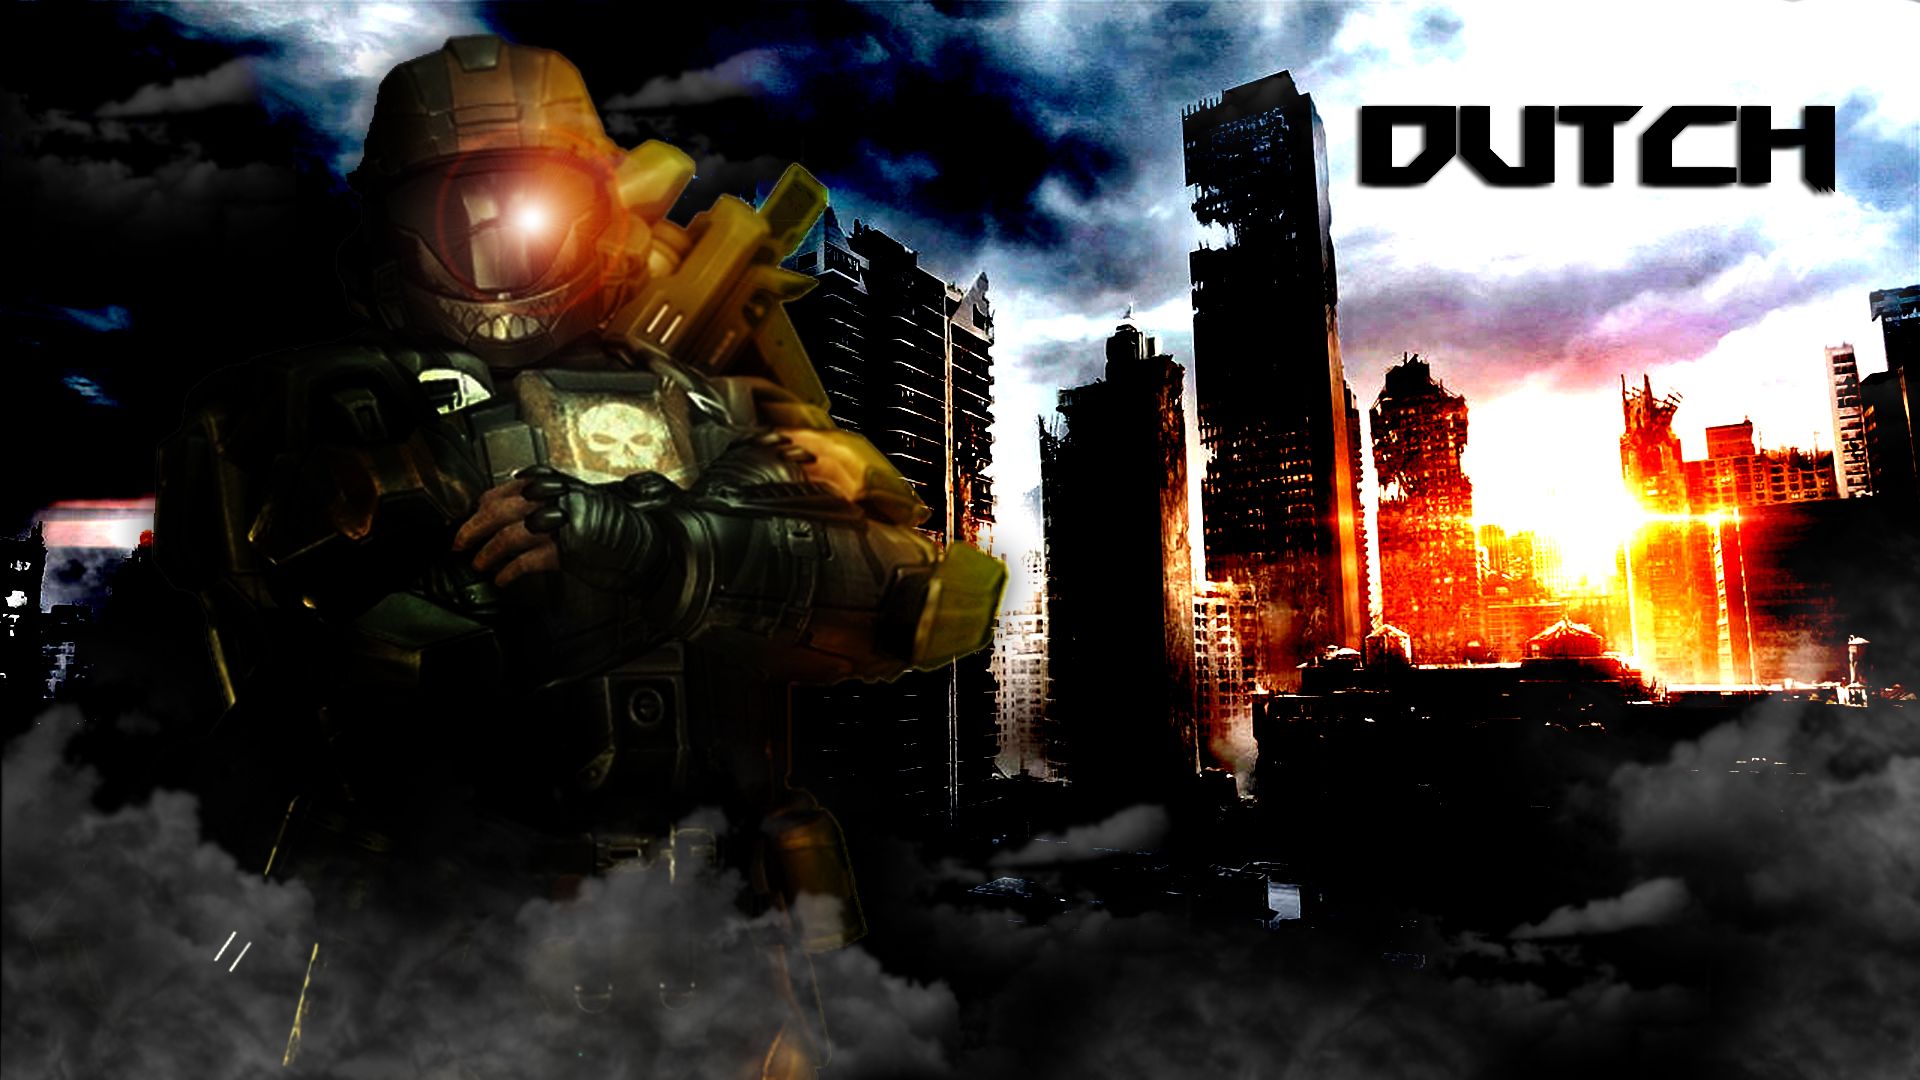 ODST Dutch - Desktop Background by Winter-218